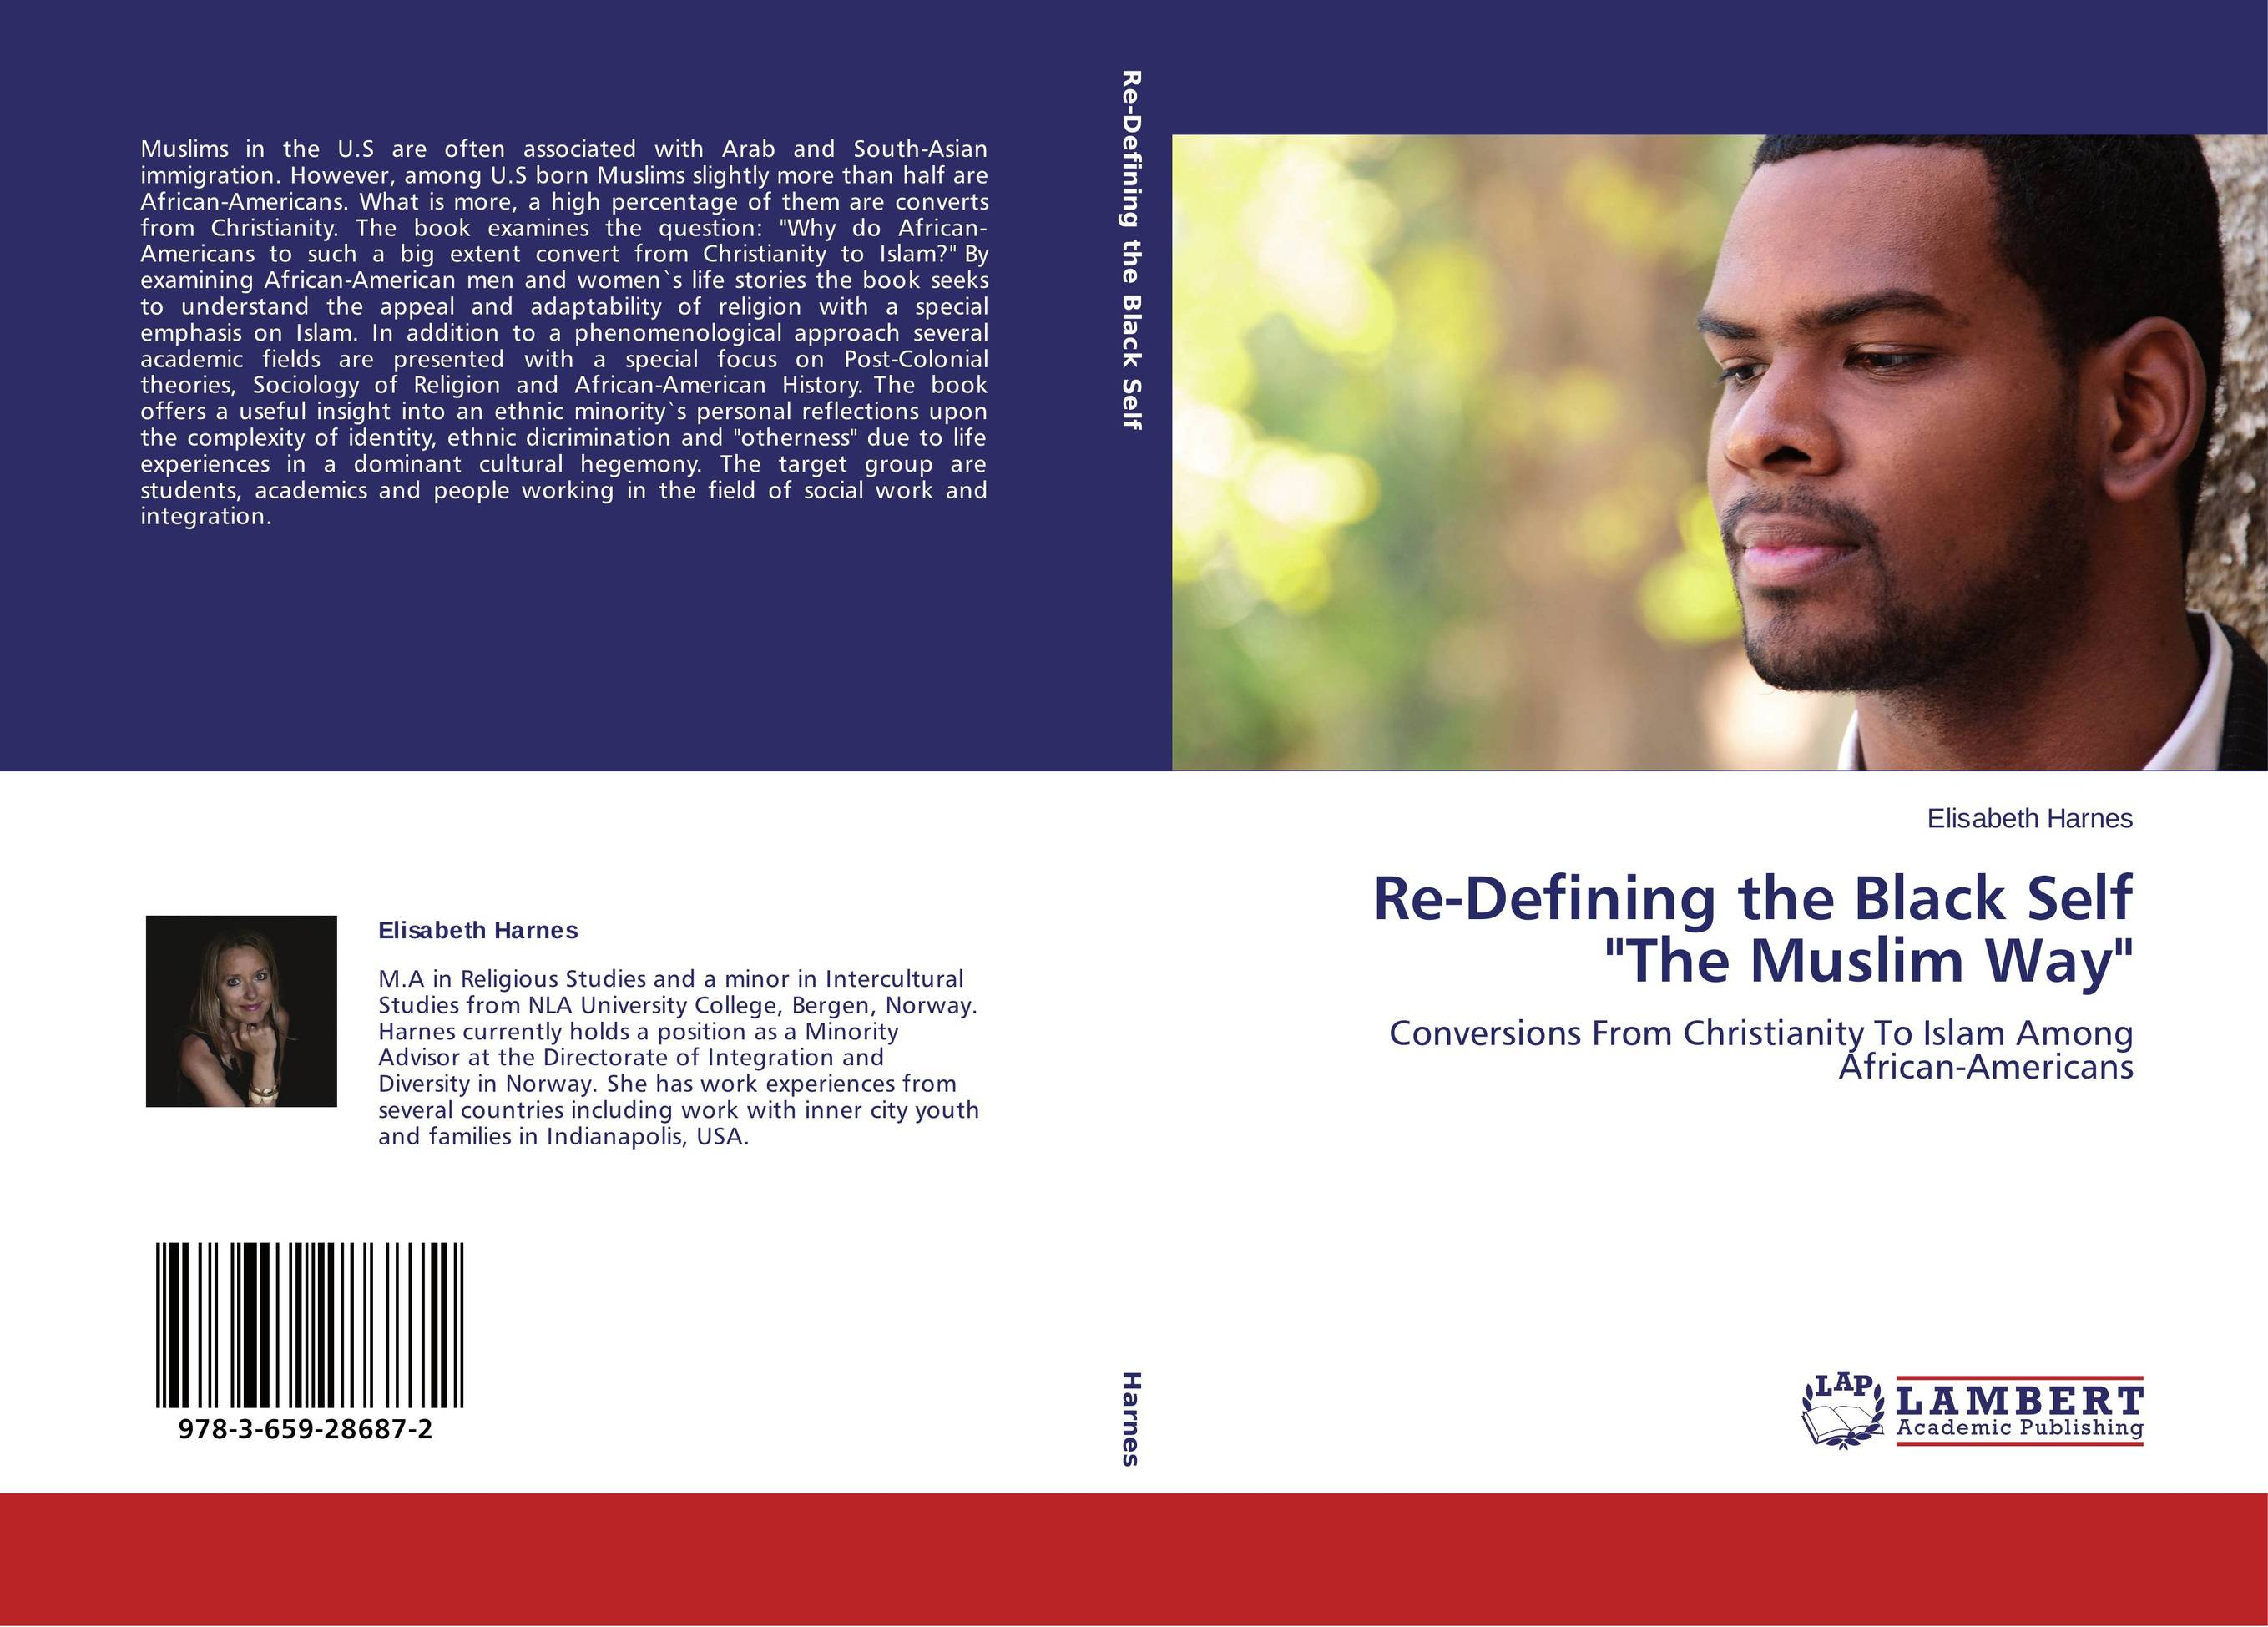 an introduction to the history of islam among african americans Introduction cross-sectional  first and foremost, we found significant heterogeneity in drug use among african americans born, raised, and educated in disadvantage, demonstrating that the investigation of within-group variations in patterns of drug use into mid-adulthood is crucial  the natural history of drug use from.